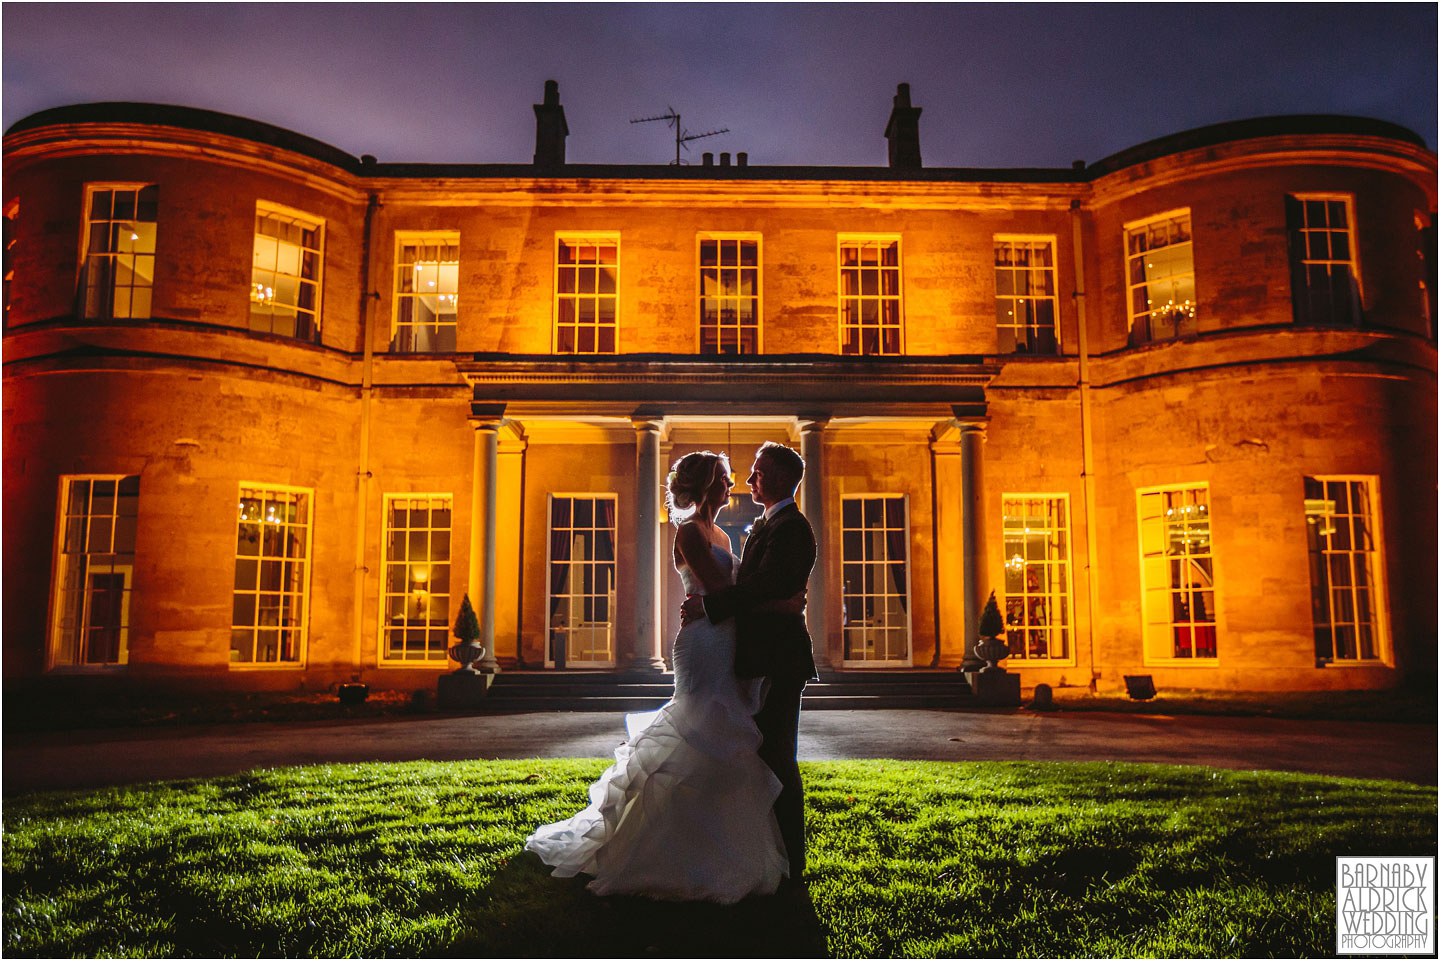 Rudding Park Wedding Photography Harrogate. Yorkshire Photographer Barnaby Aldrick, Rudding Park Yorkshire Wedding, Autumnal Wedding Photography Yorkshire, Barnaby Aldrick Wedding Photography, Leeds wedding photographer